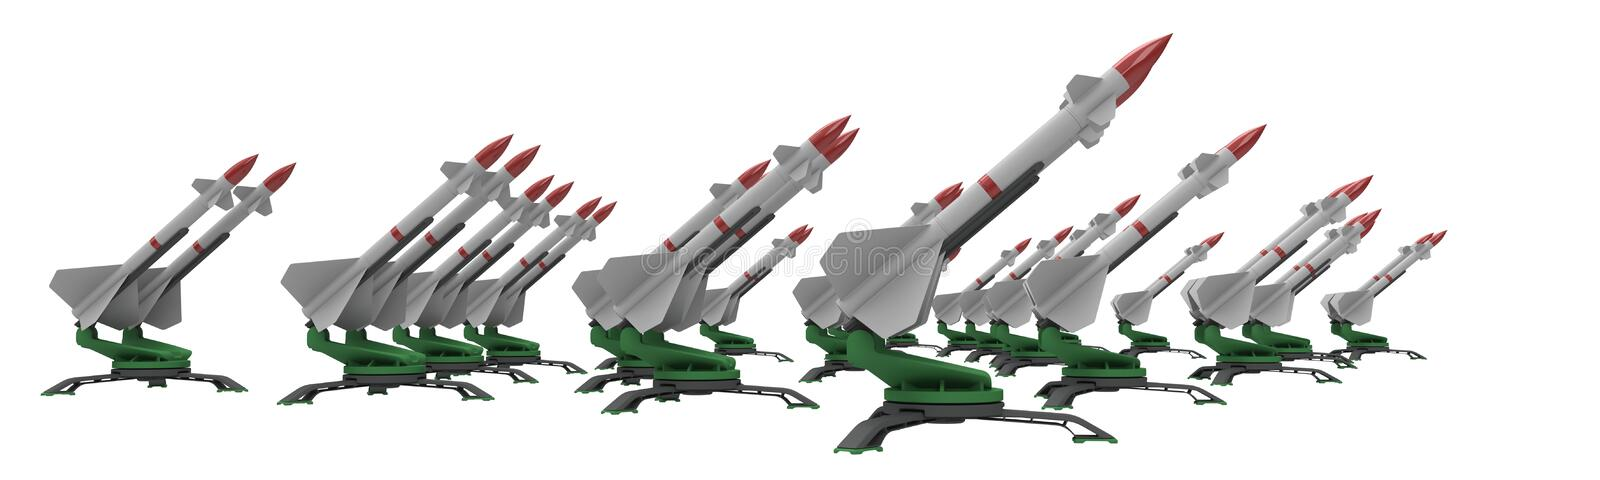 Missiles stock illustration